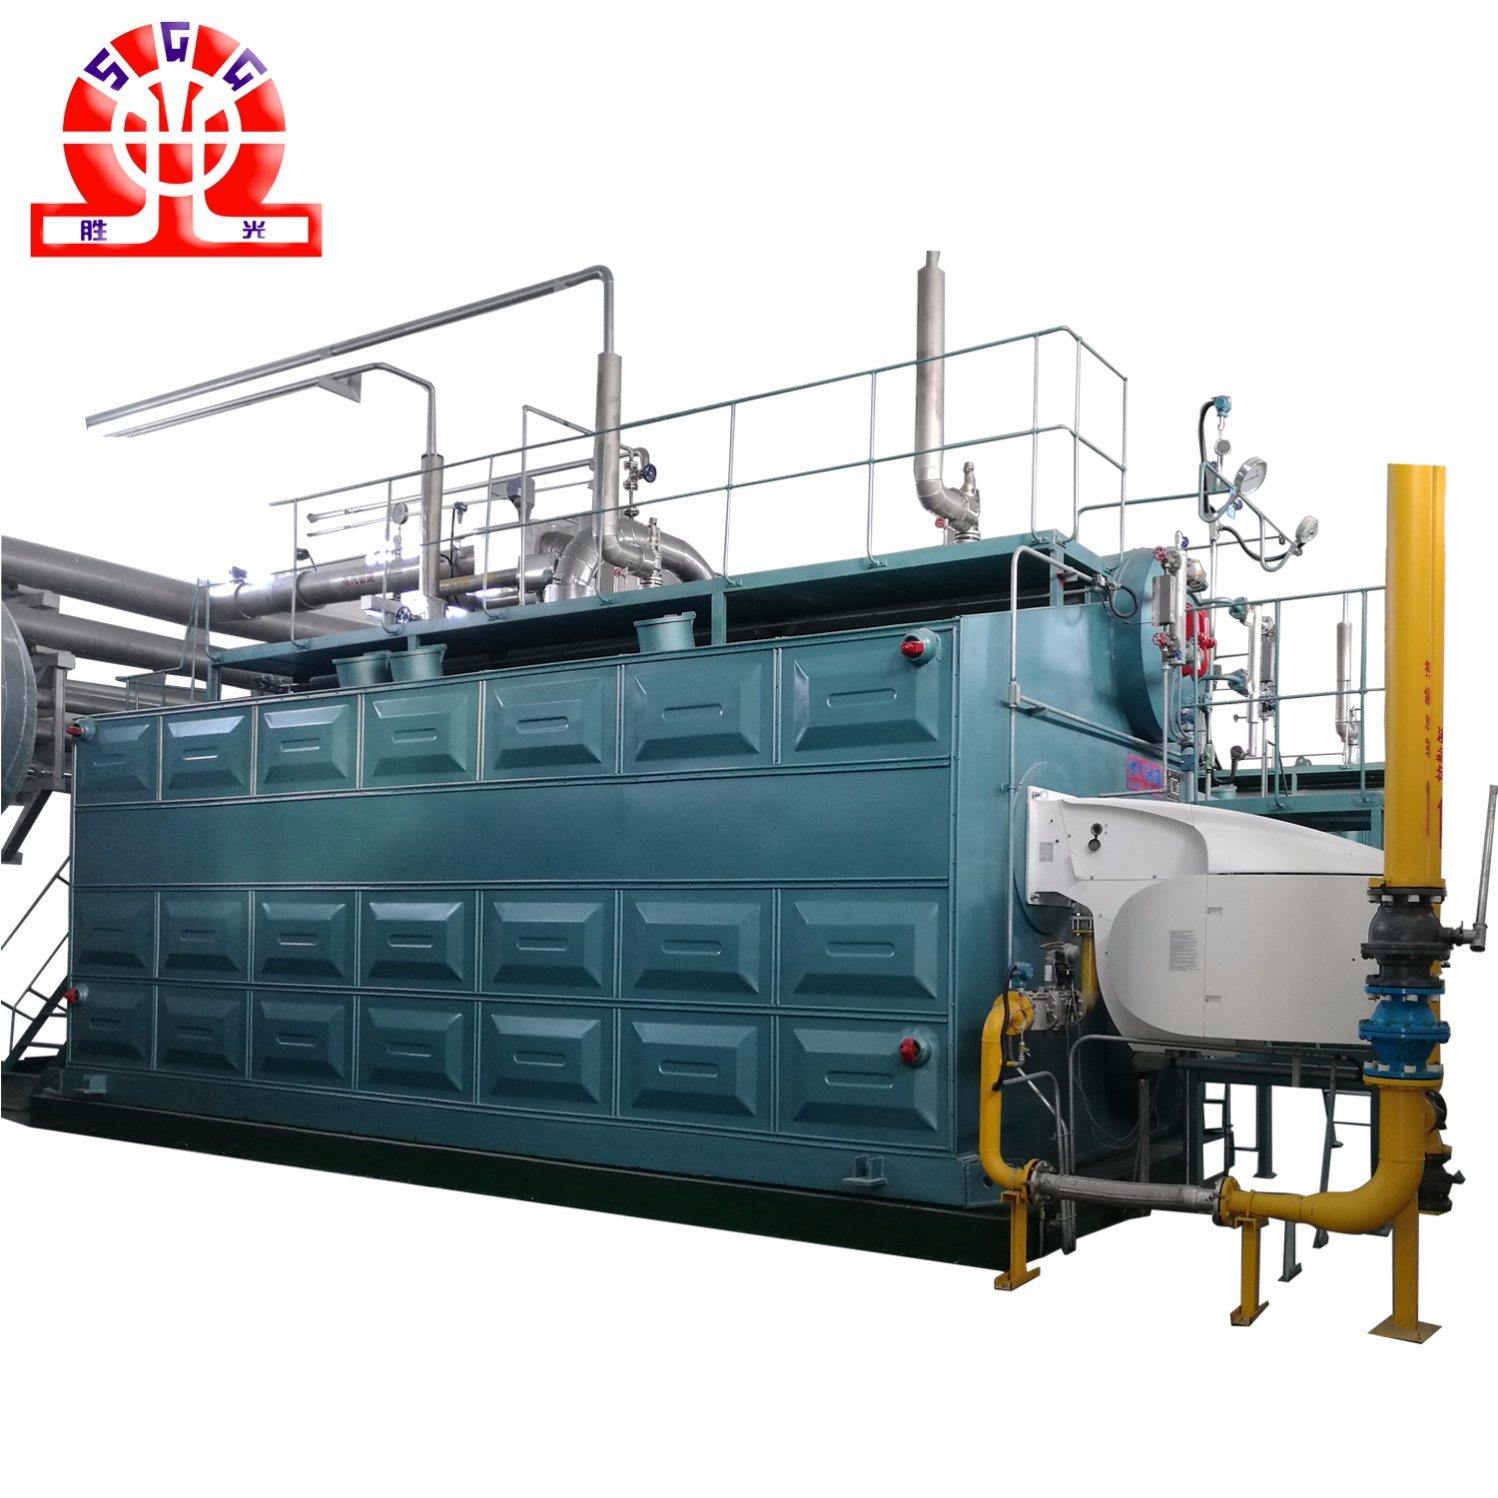 China Factory Direct Sell Steam Boiler - China Gas Oil Steam Boiler ...